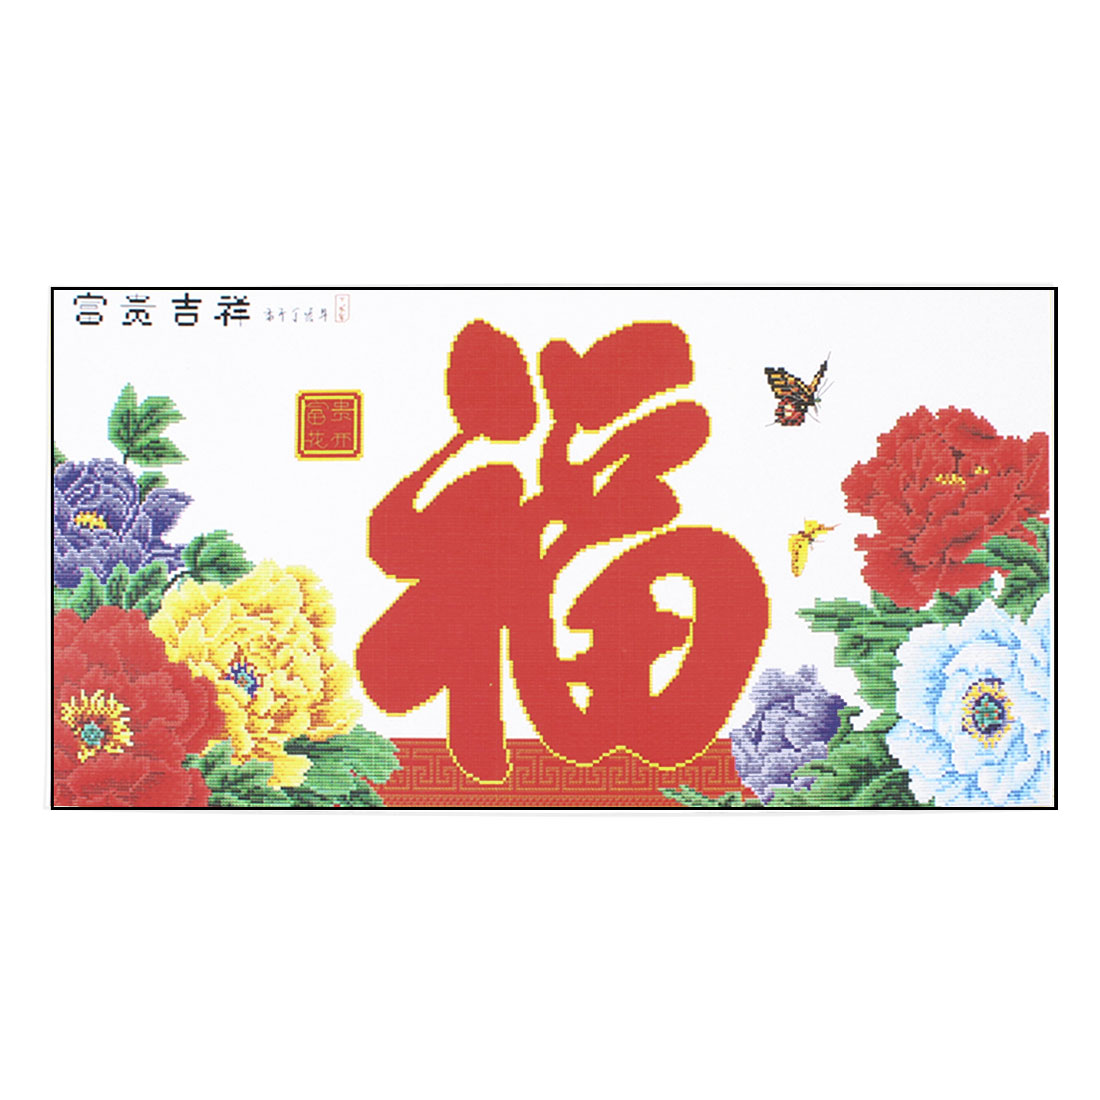 Lady Woman Chinese Peony Butterfly Print Stamped Cross Stitch Counted Kit